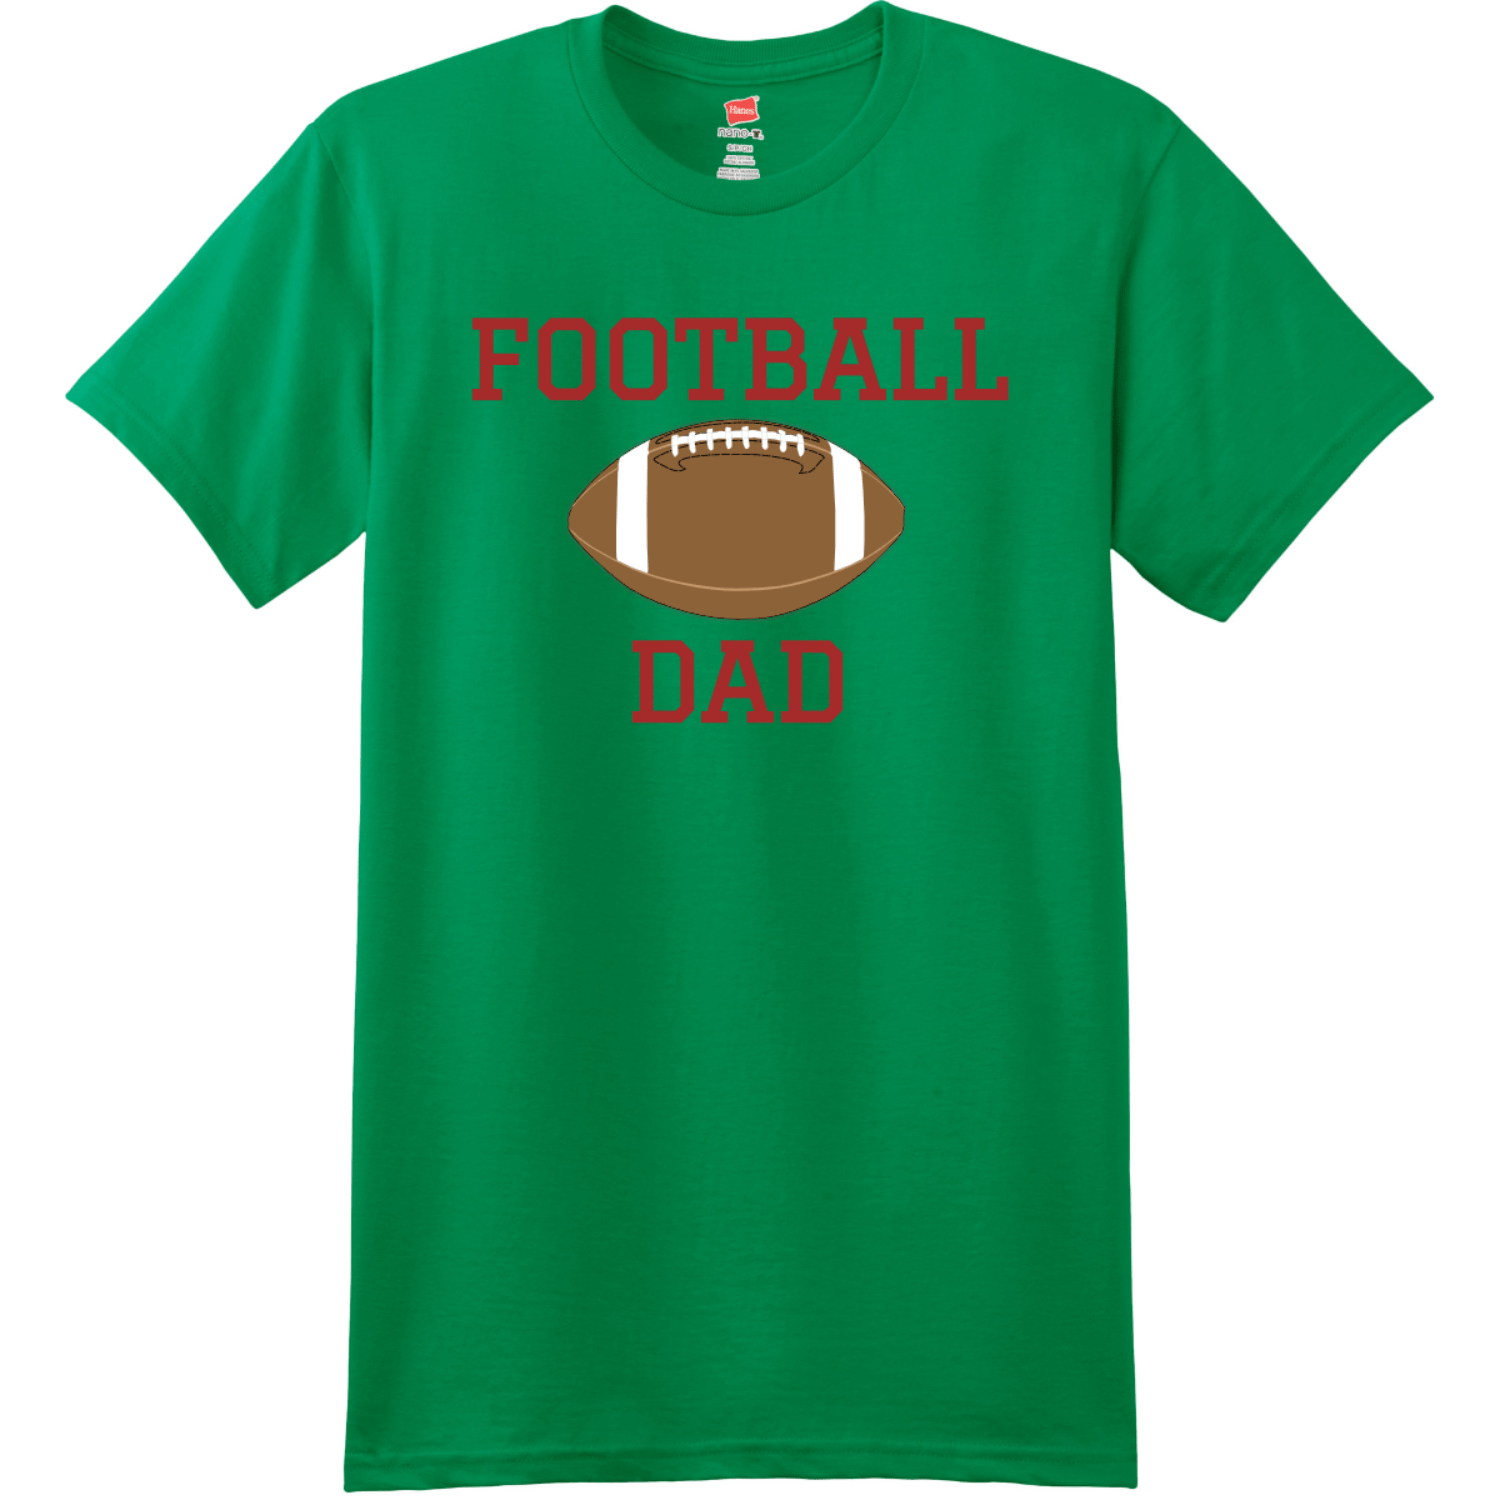 Football Dad T Shirt With Name And Number Kelly Green Hanes Nano 4980 Ringspun Cotton T Shirt